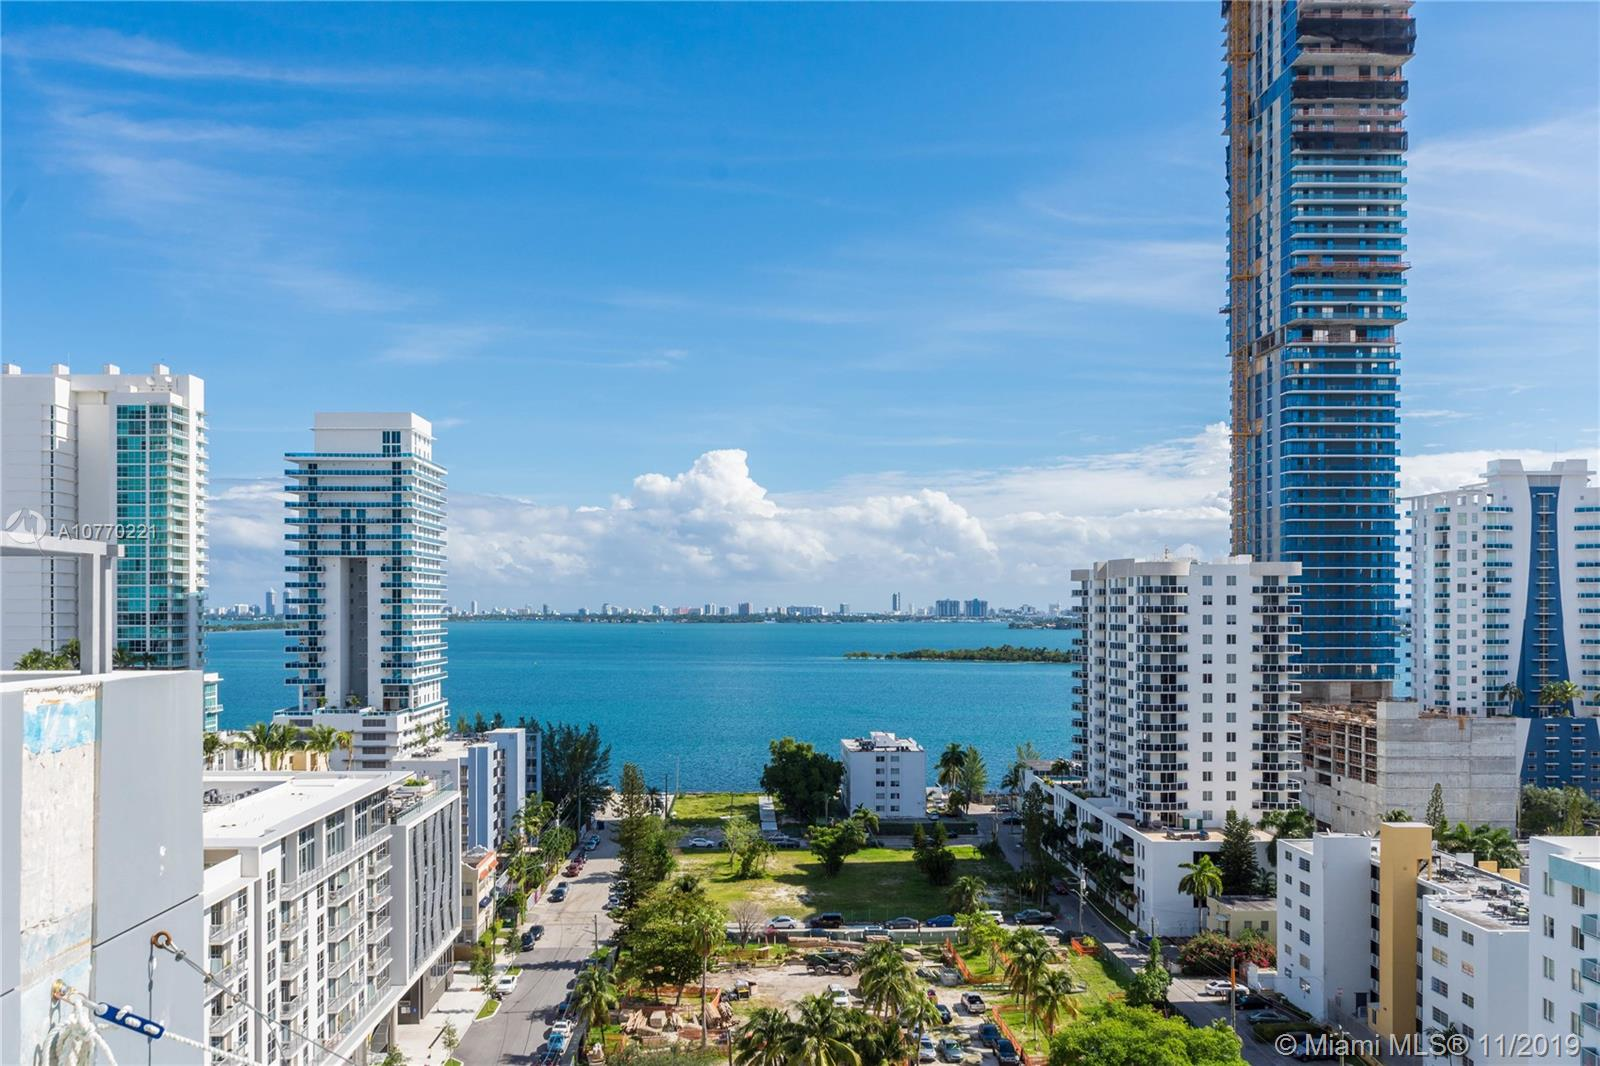 350 NE 24th St, 1402 - Miami, Florida